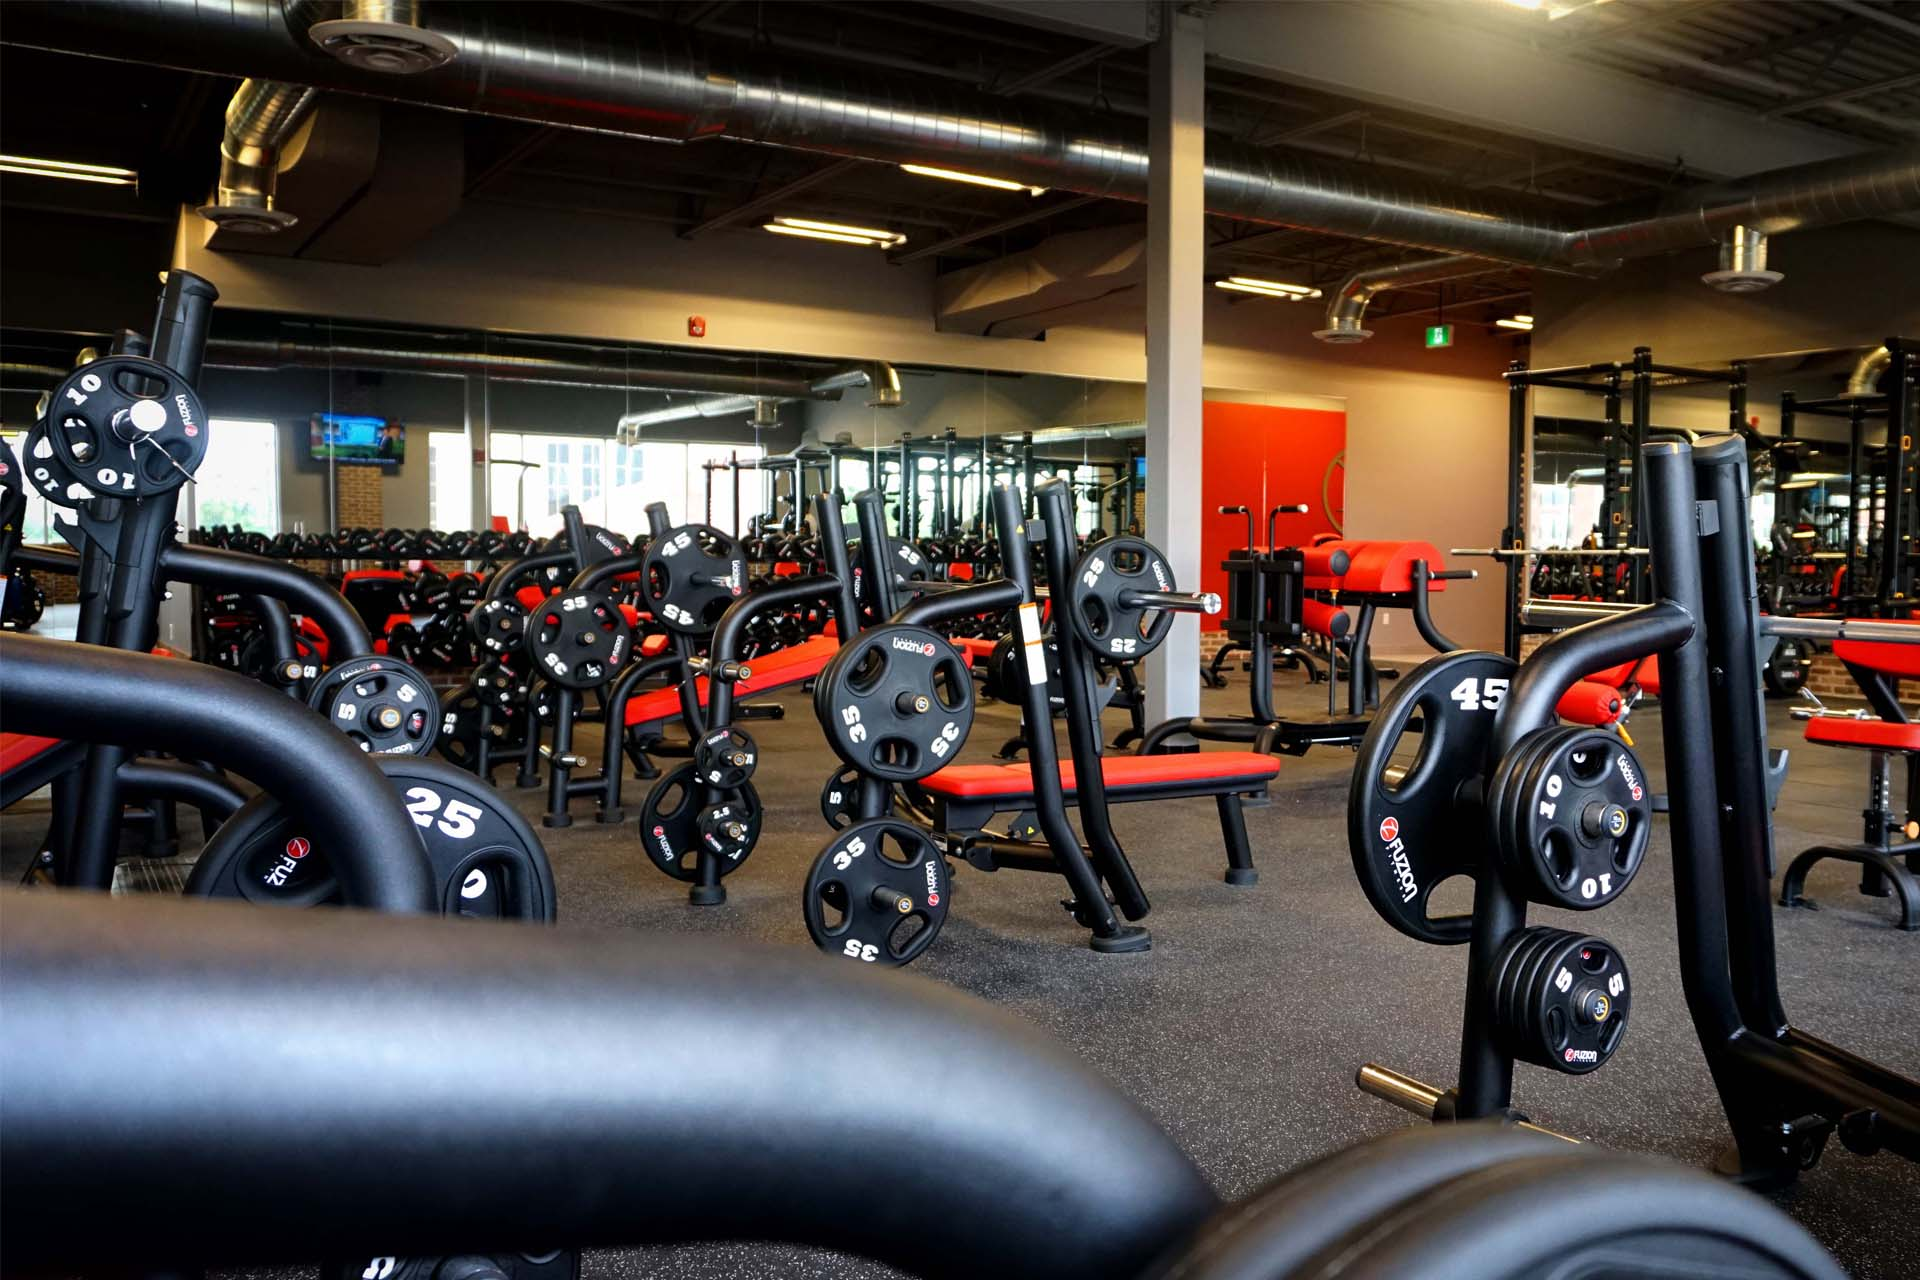 circuit-fitness-training-in-gym